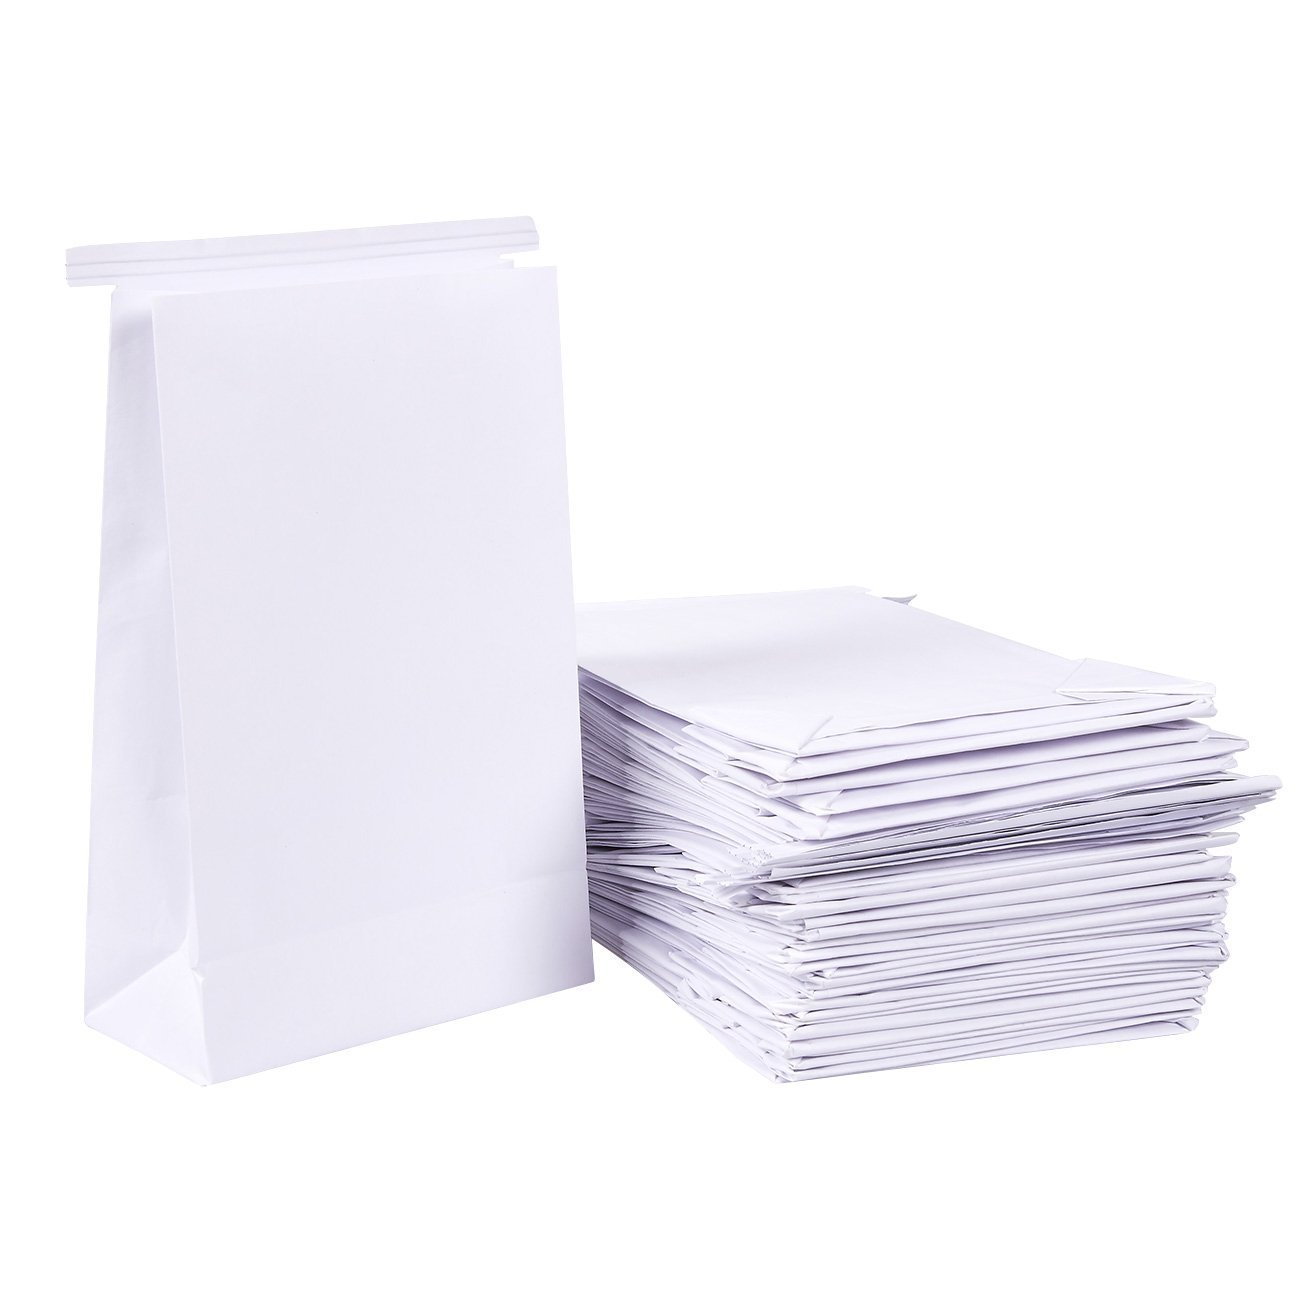 50-Pack Vomit Bags - No Print Plain White Emesis Barf Bags for Motion Sickness and Morning Sickness, Paper Puke Bag, 6 x 2.6 x 9.7 inches